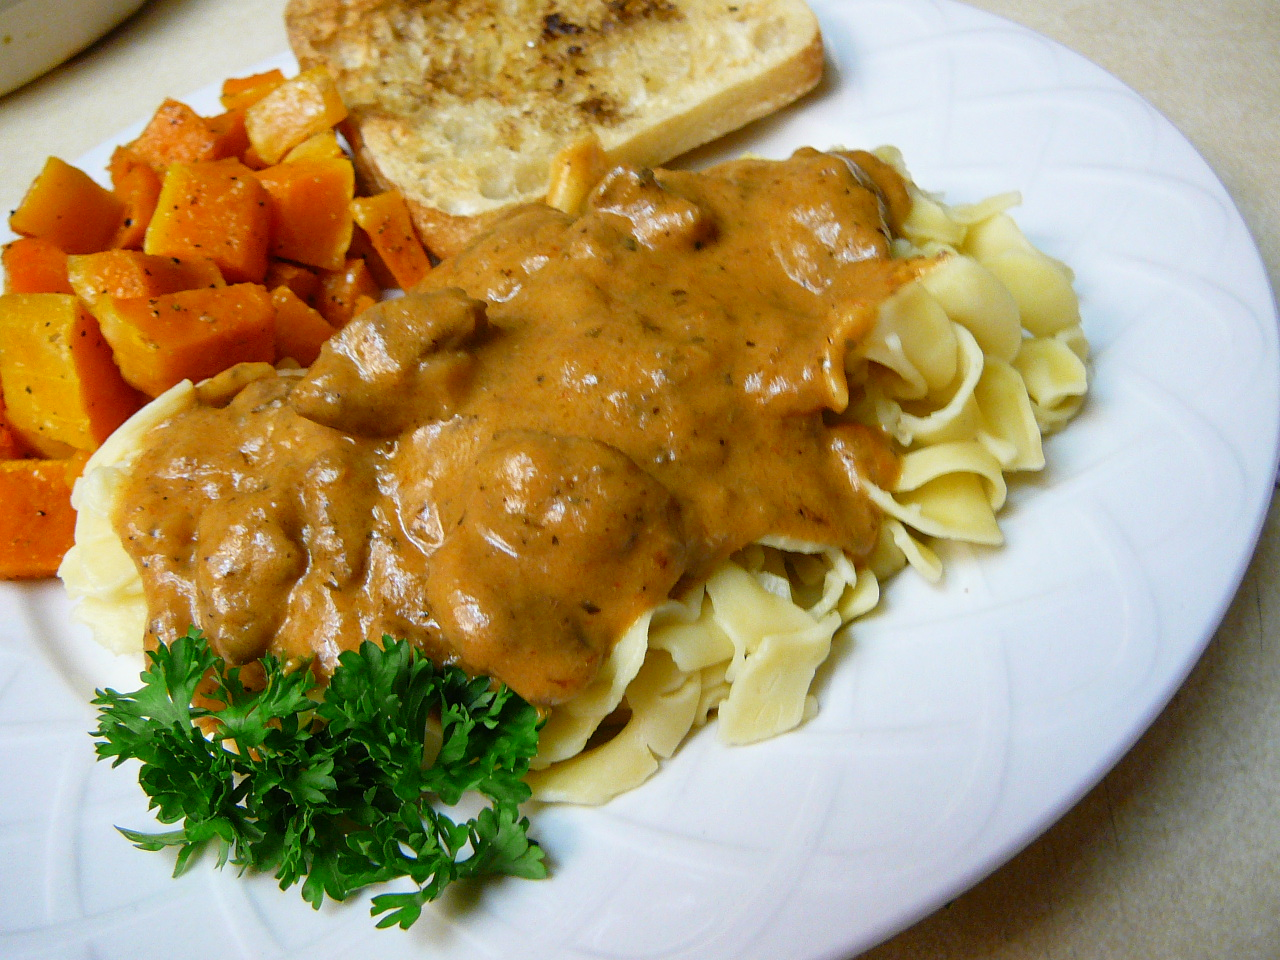 Beef tips with sauce over pasta with carrot side dish